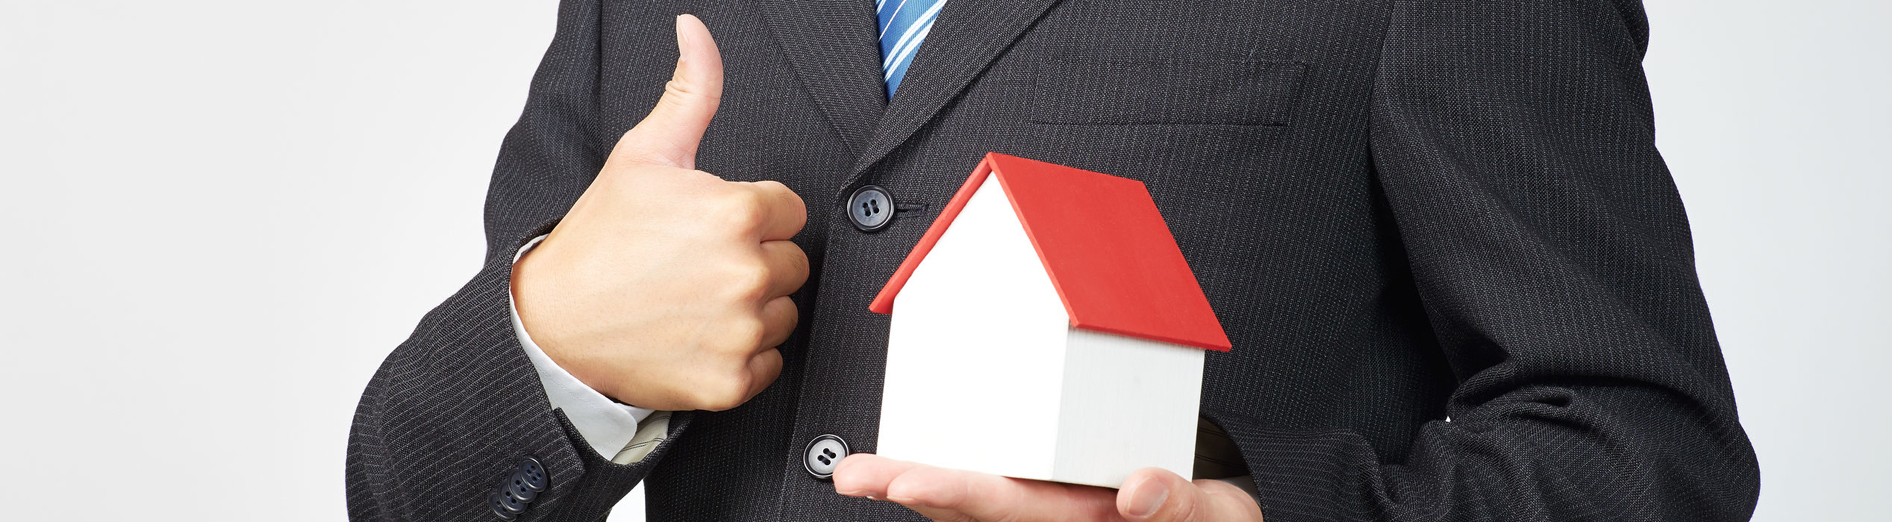 68285851 - businessman holds tablet with house model miniature